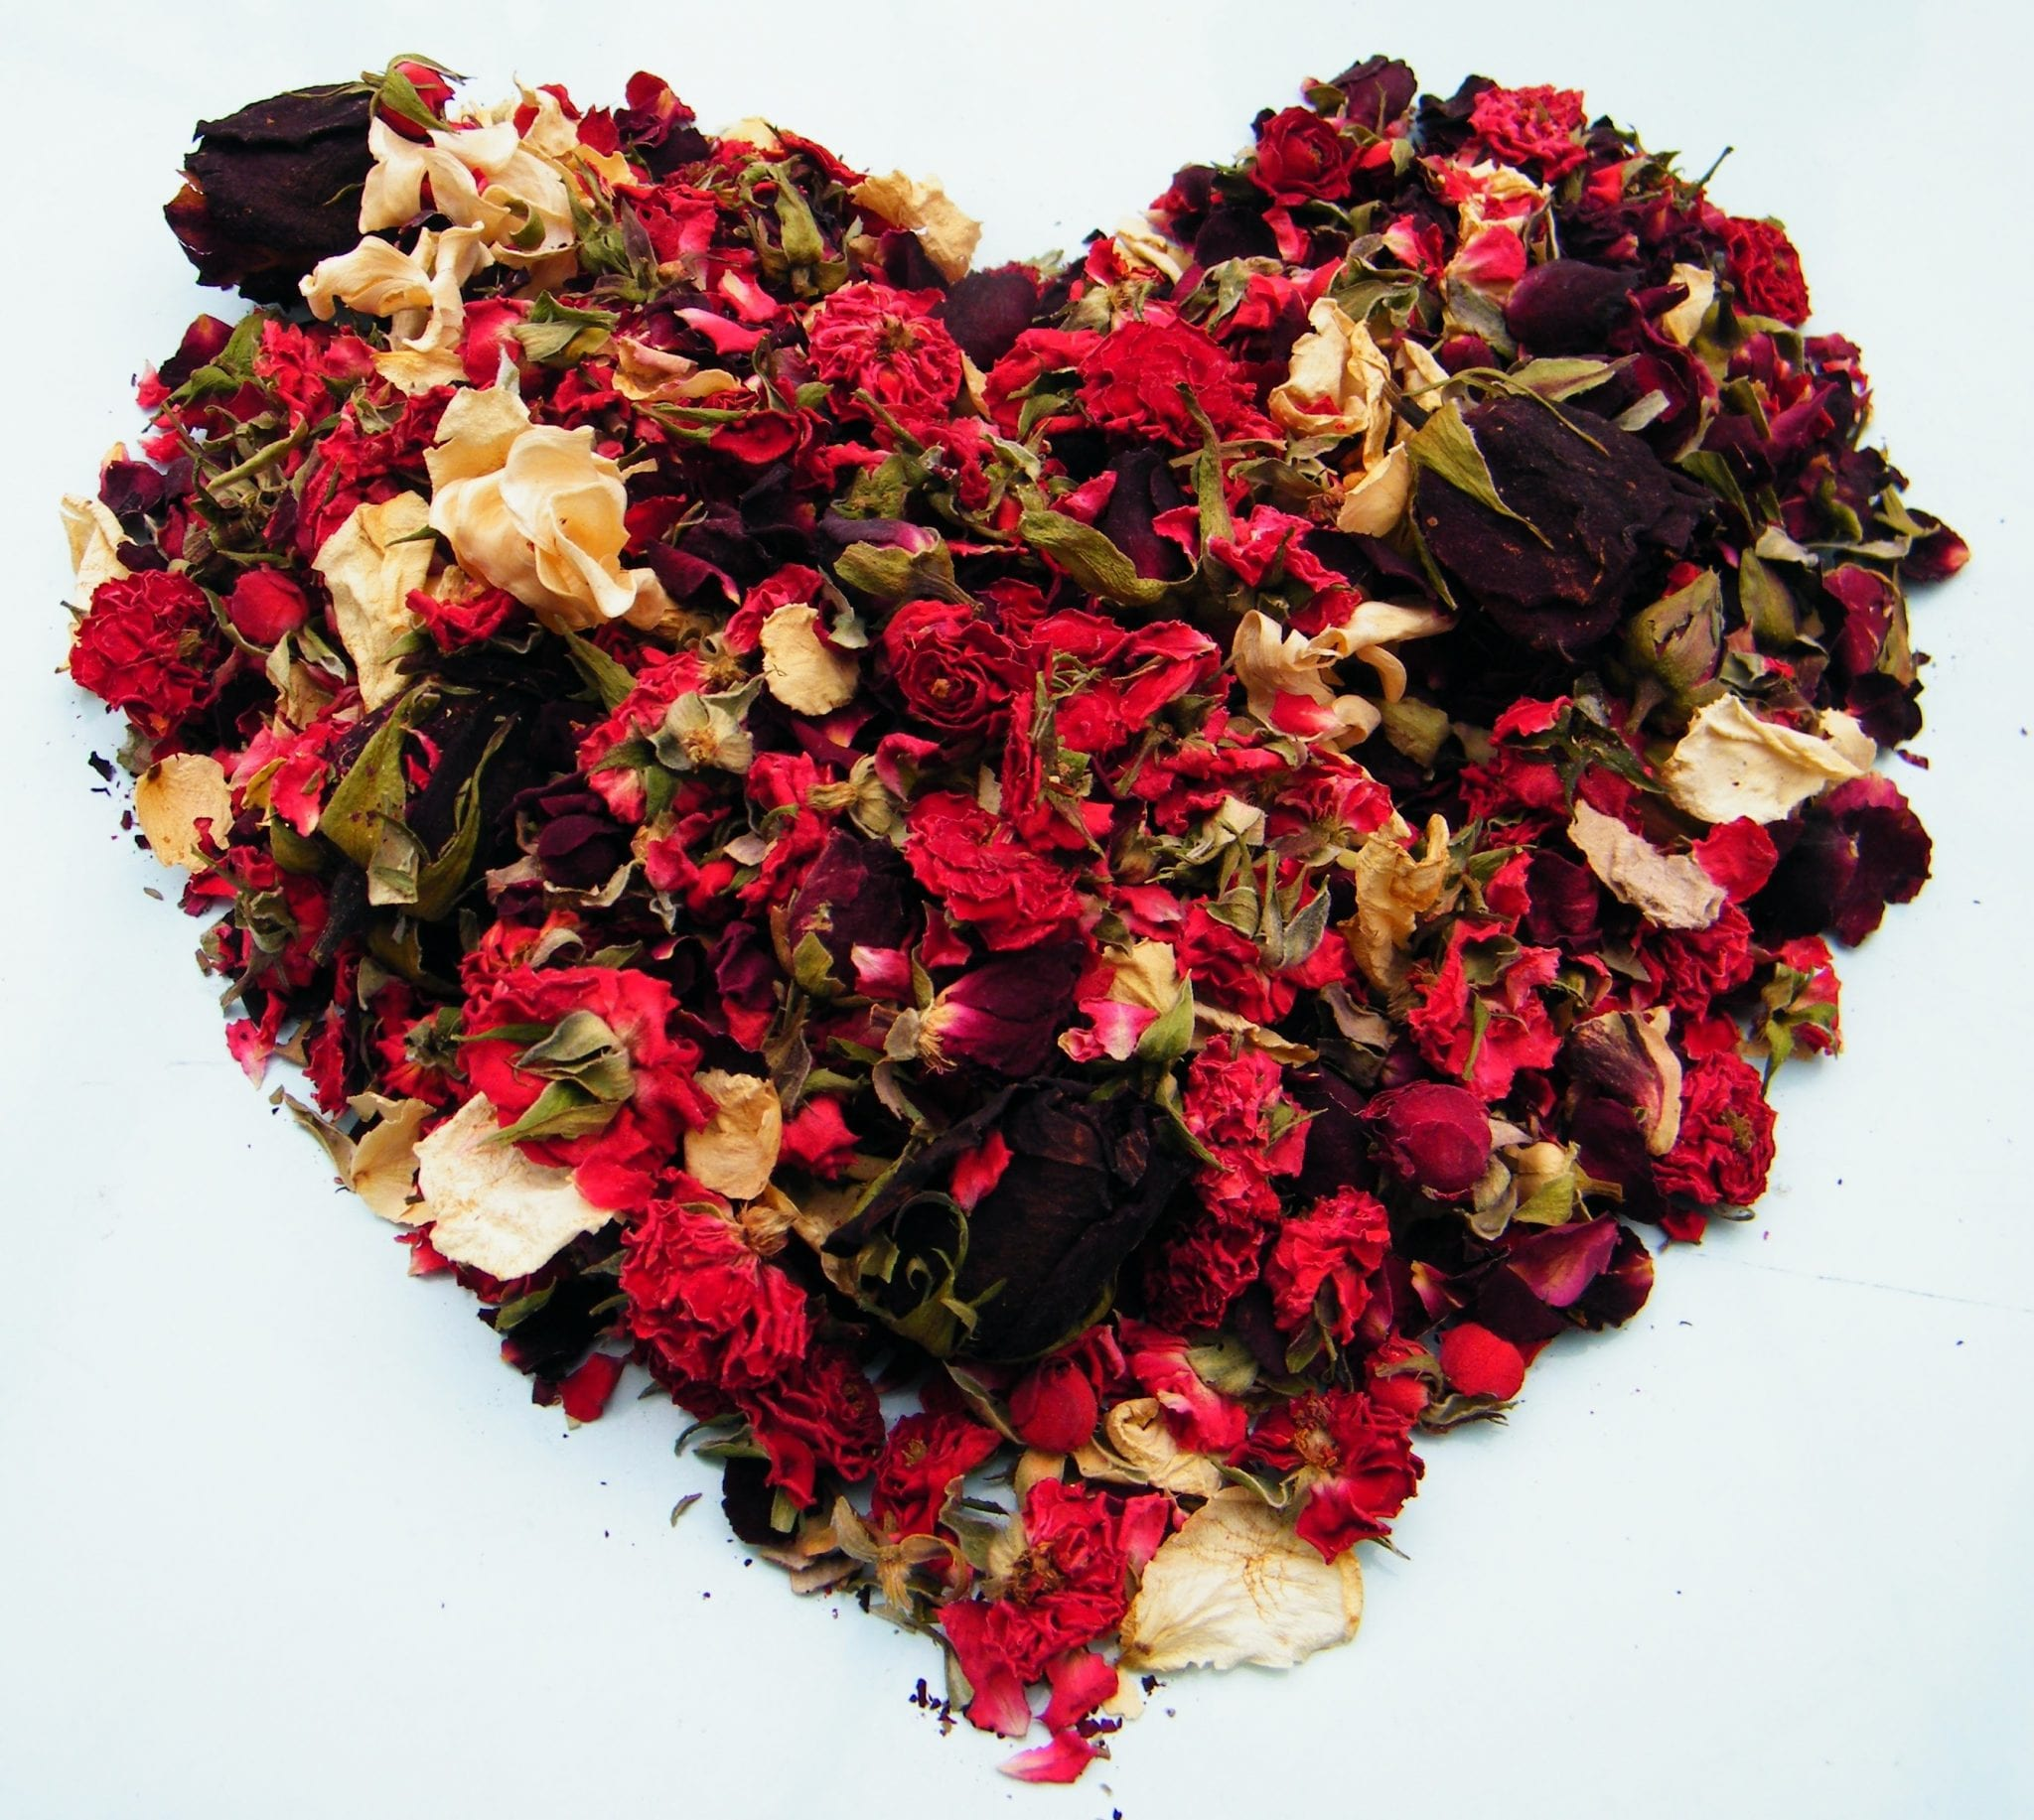 Sweetheart Potpourri Recipe With Dried Rose Buds And